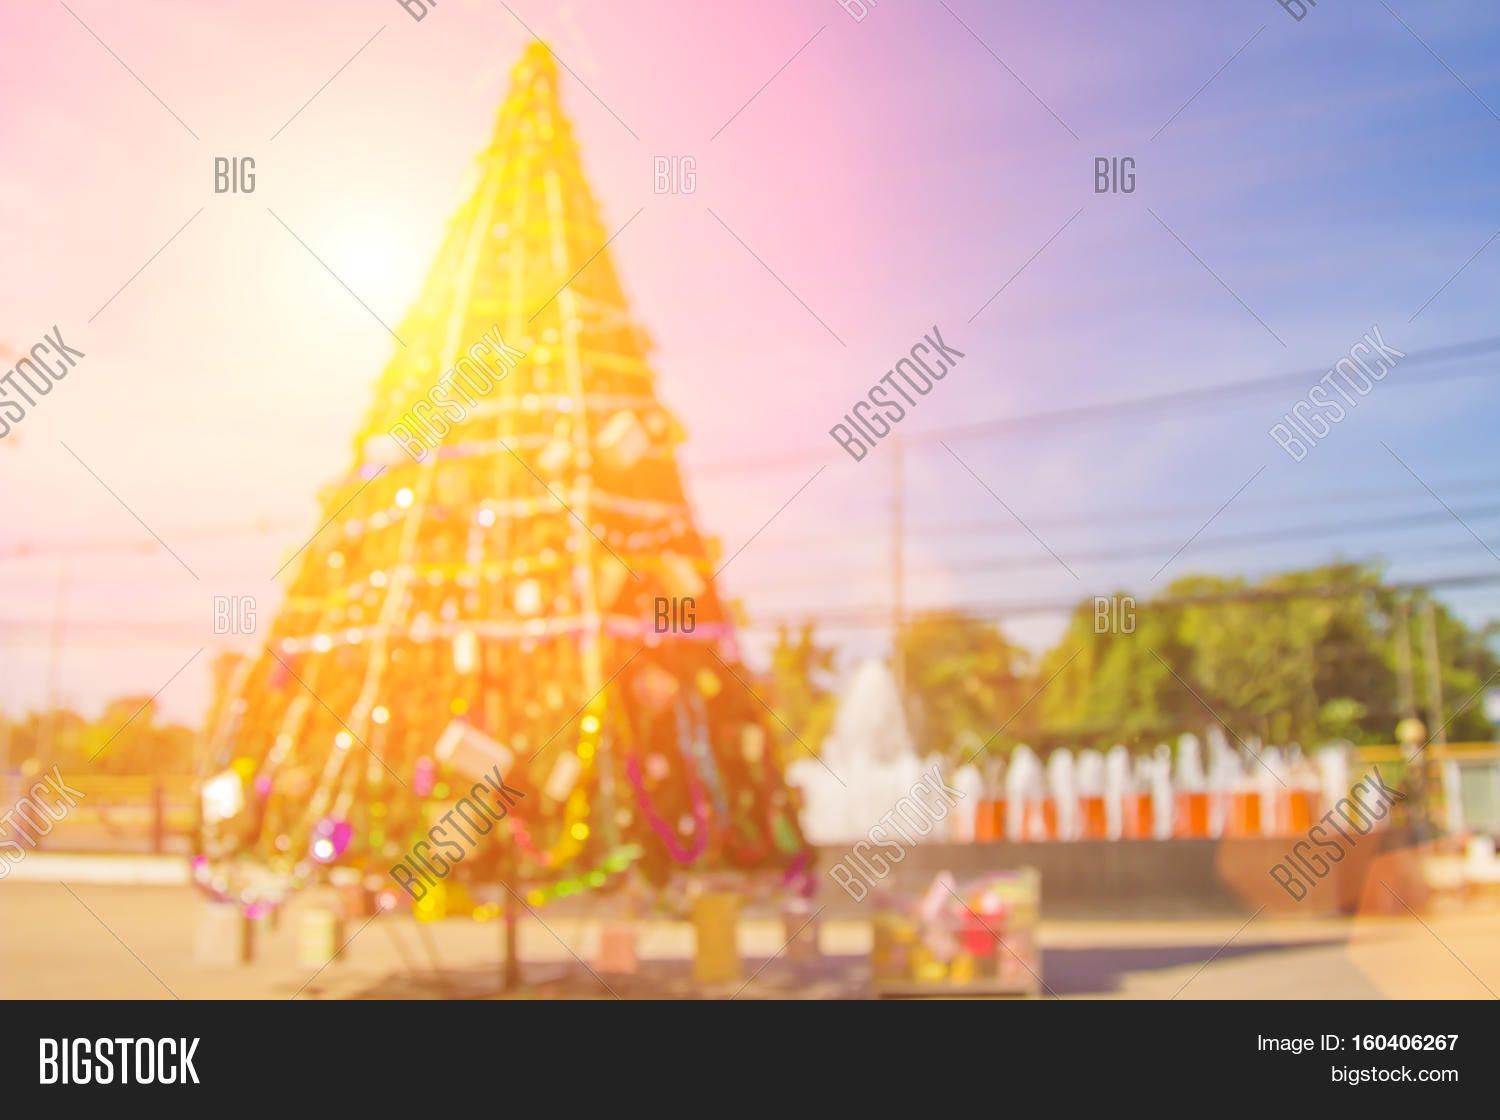 Blurred Christmas Tree Image & Photo (Free Trial) | Bigstock